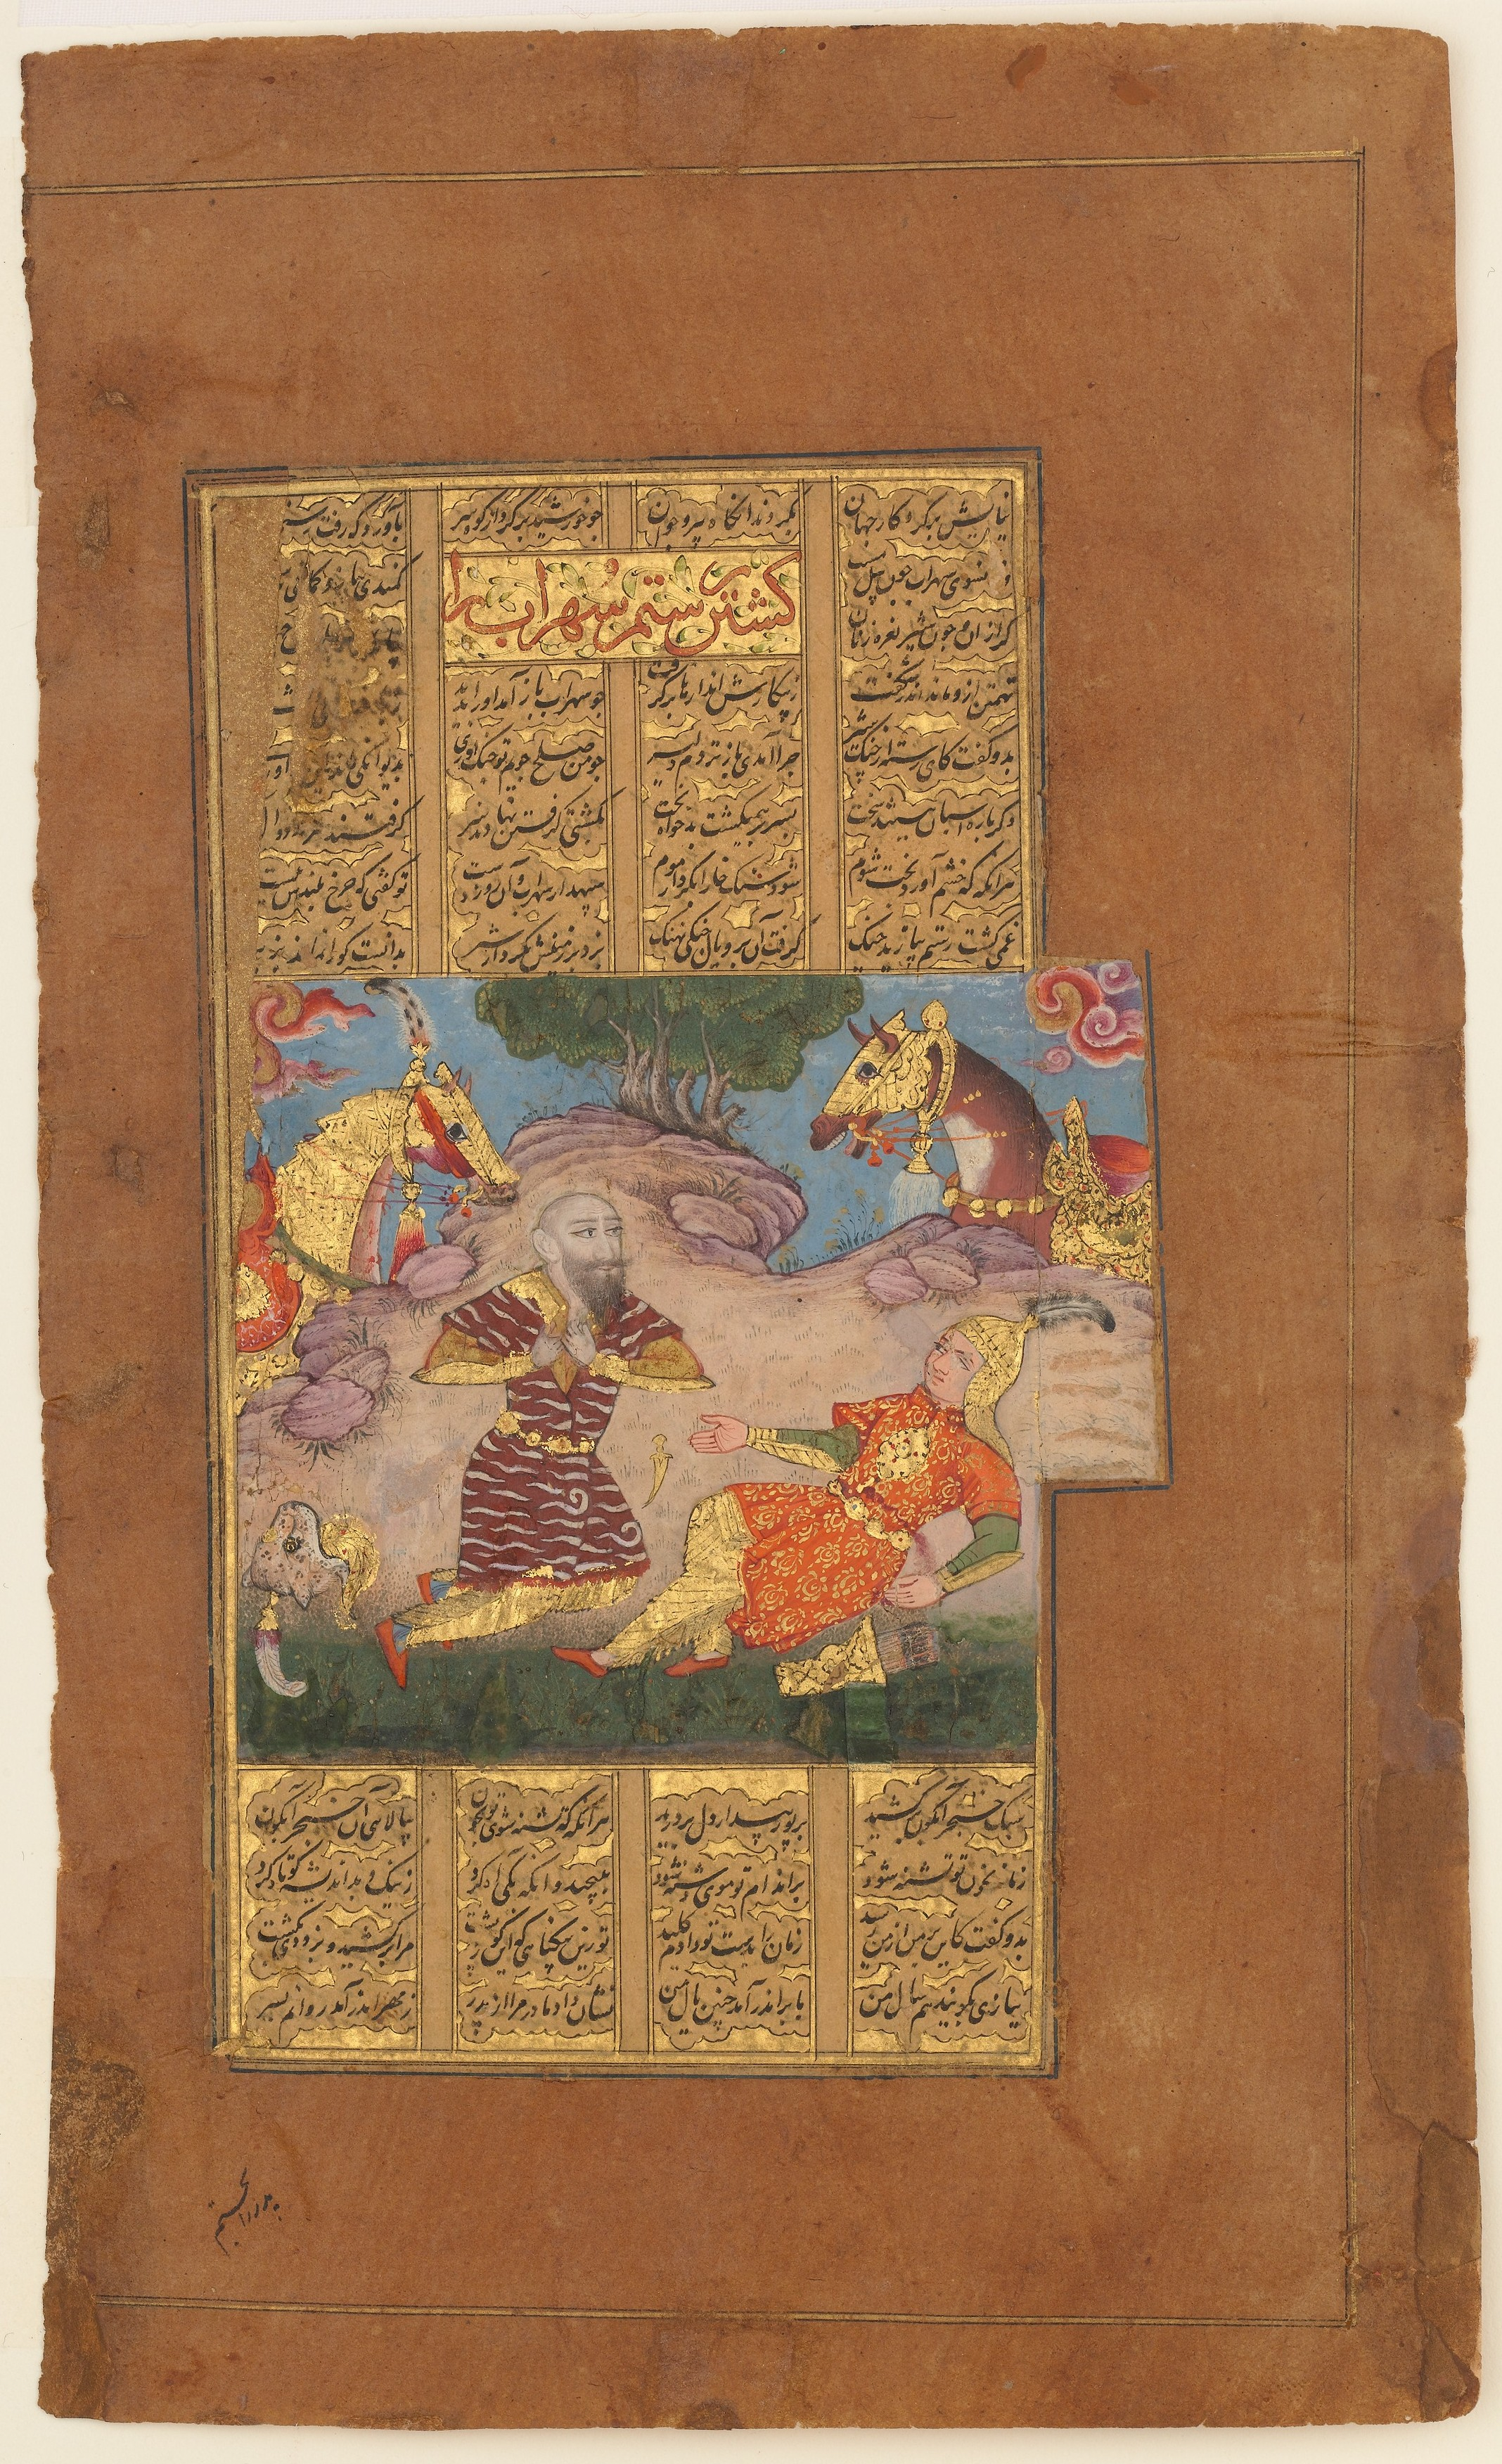 Rustam and Shorab, Shahnameh,